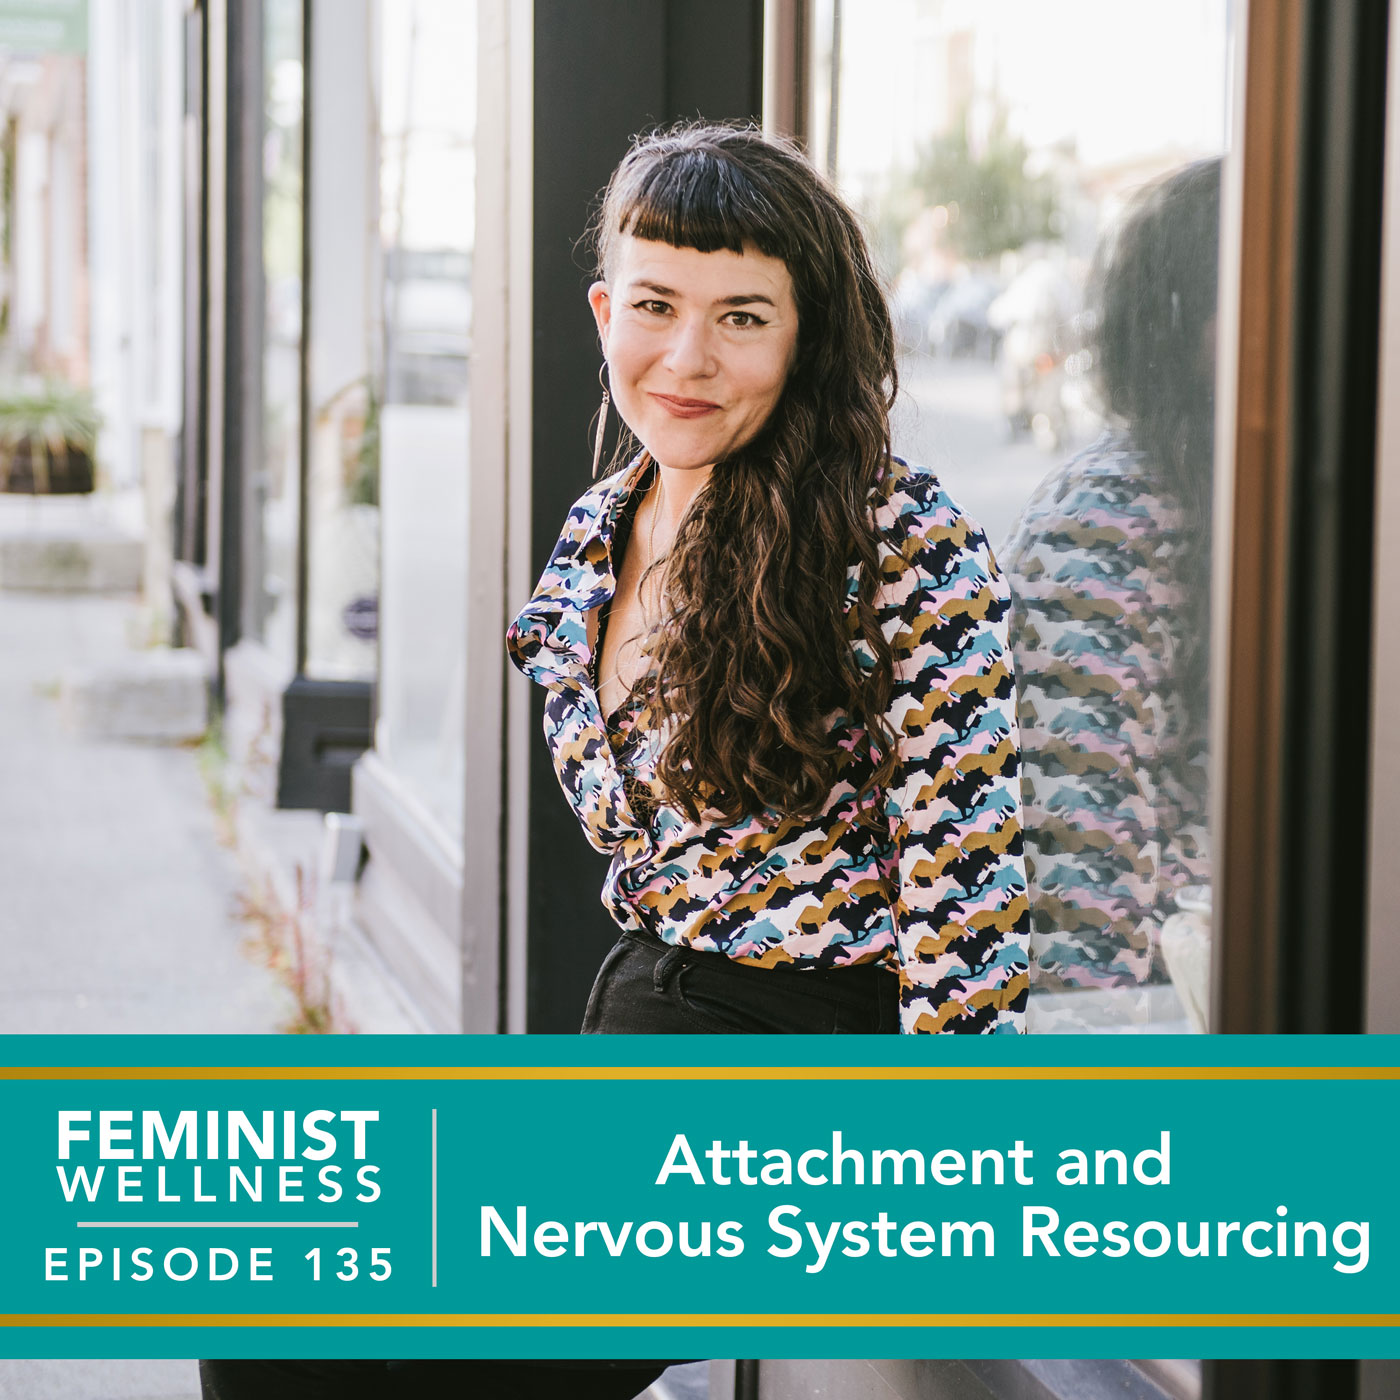 Feminist Wellness with Victoria Albina   Attachment and Nervous System Resourcing